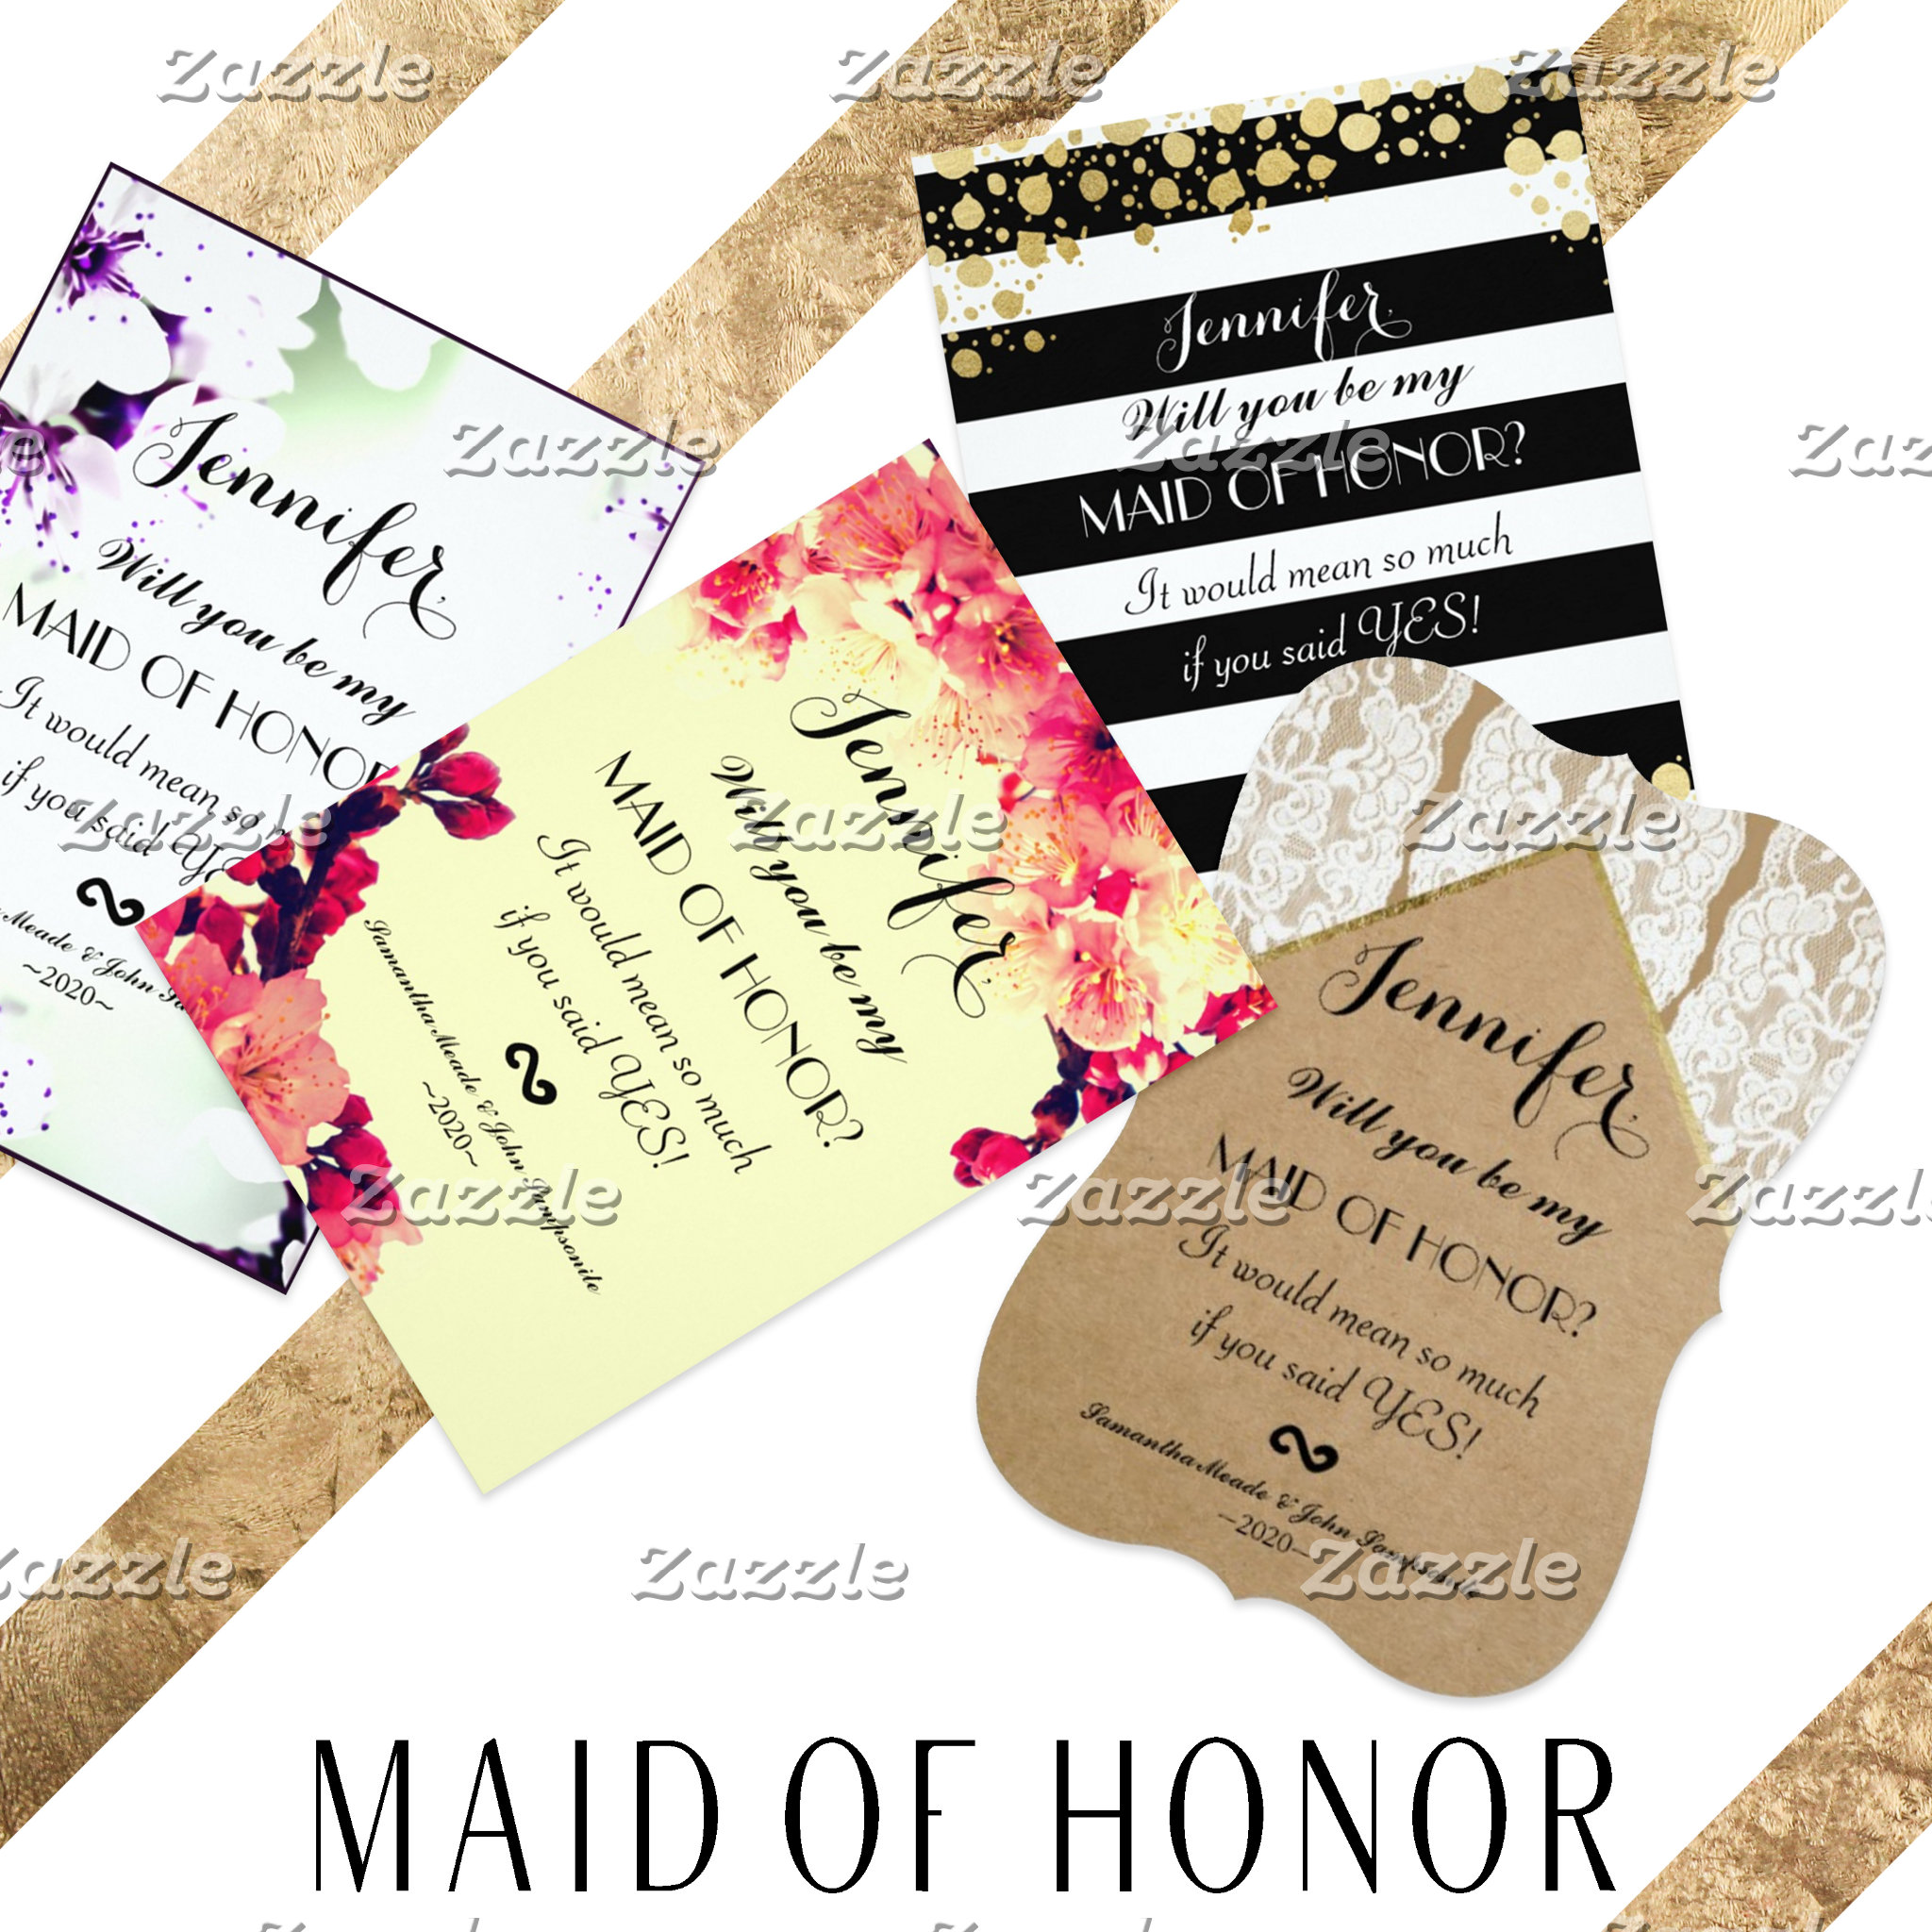 Maid of Honor Invitations